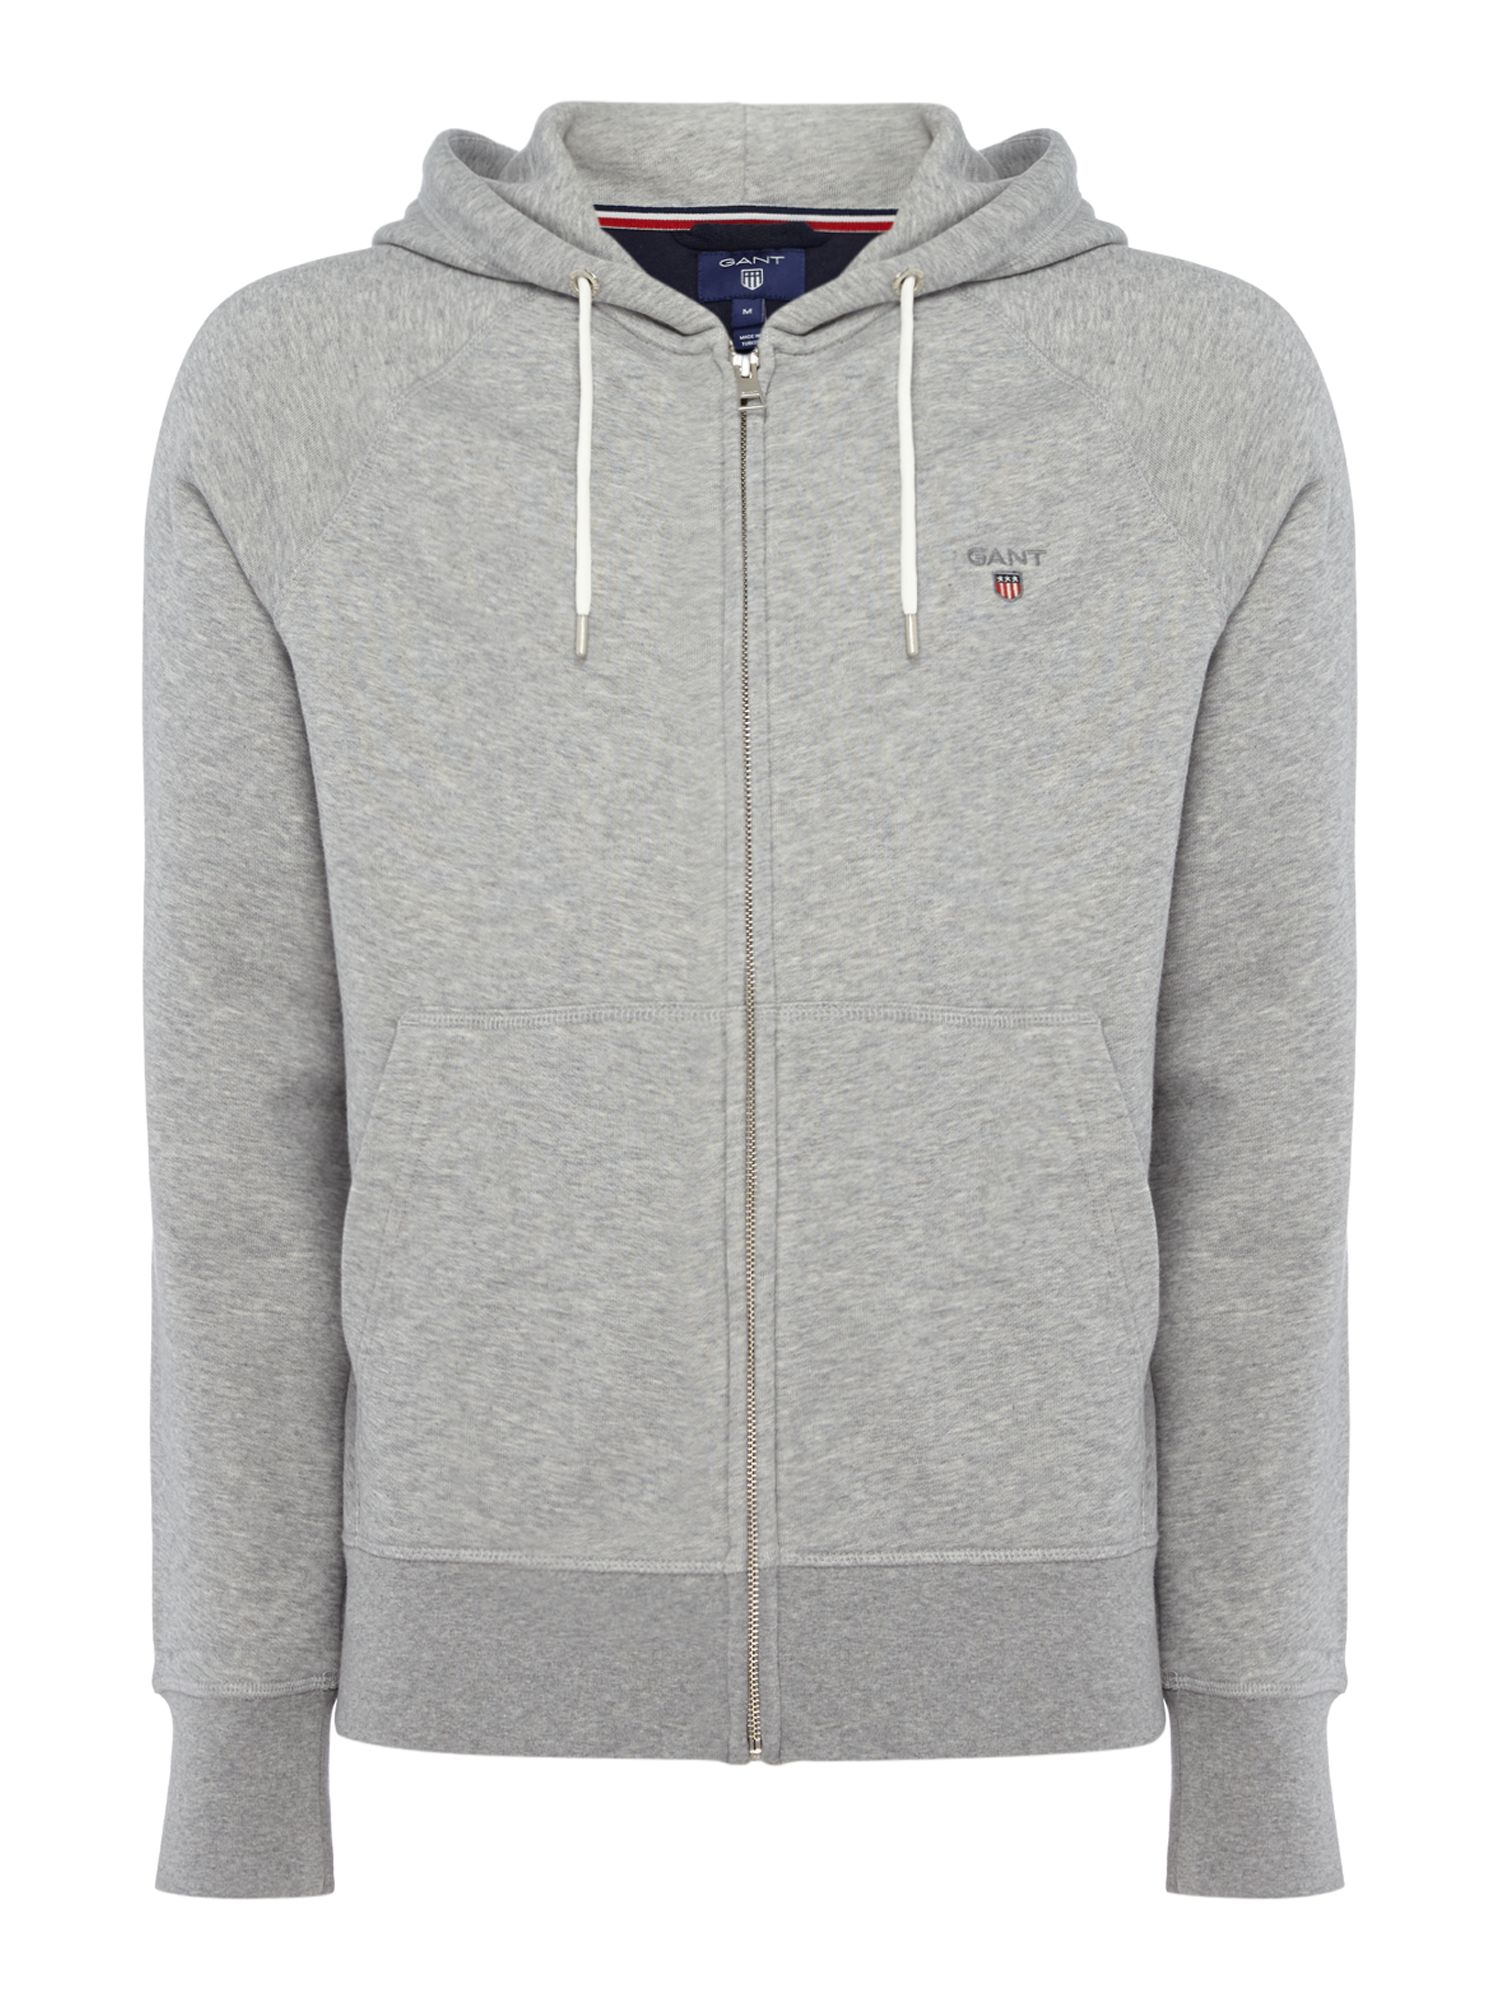 Men's Gant Original Full Zip Sweat Hoodie, Grey